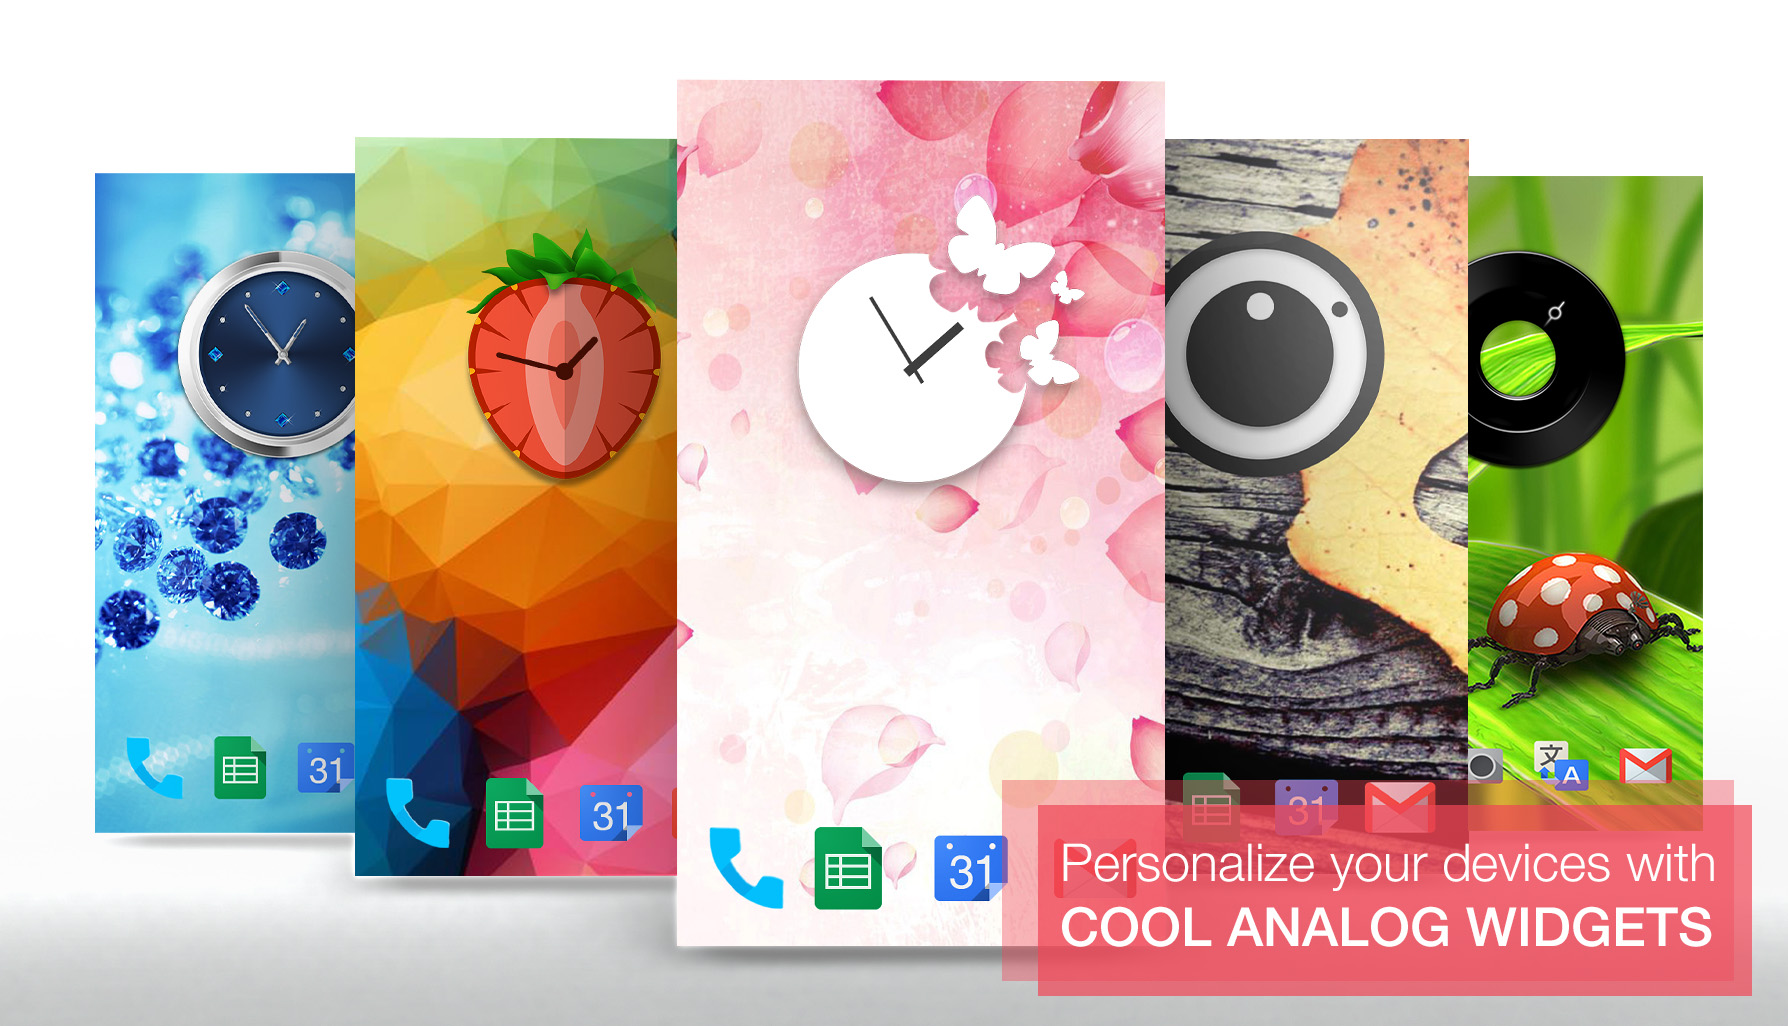 Cool Analog Widgets